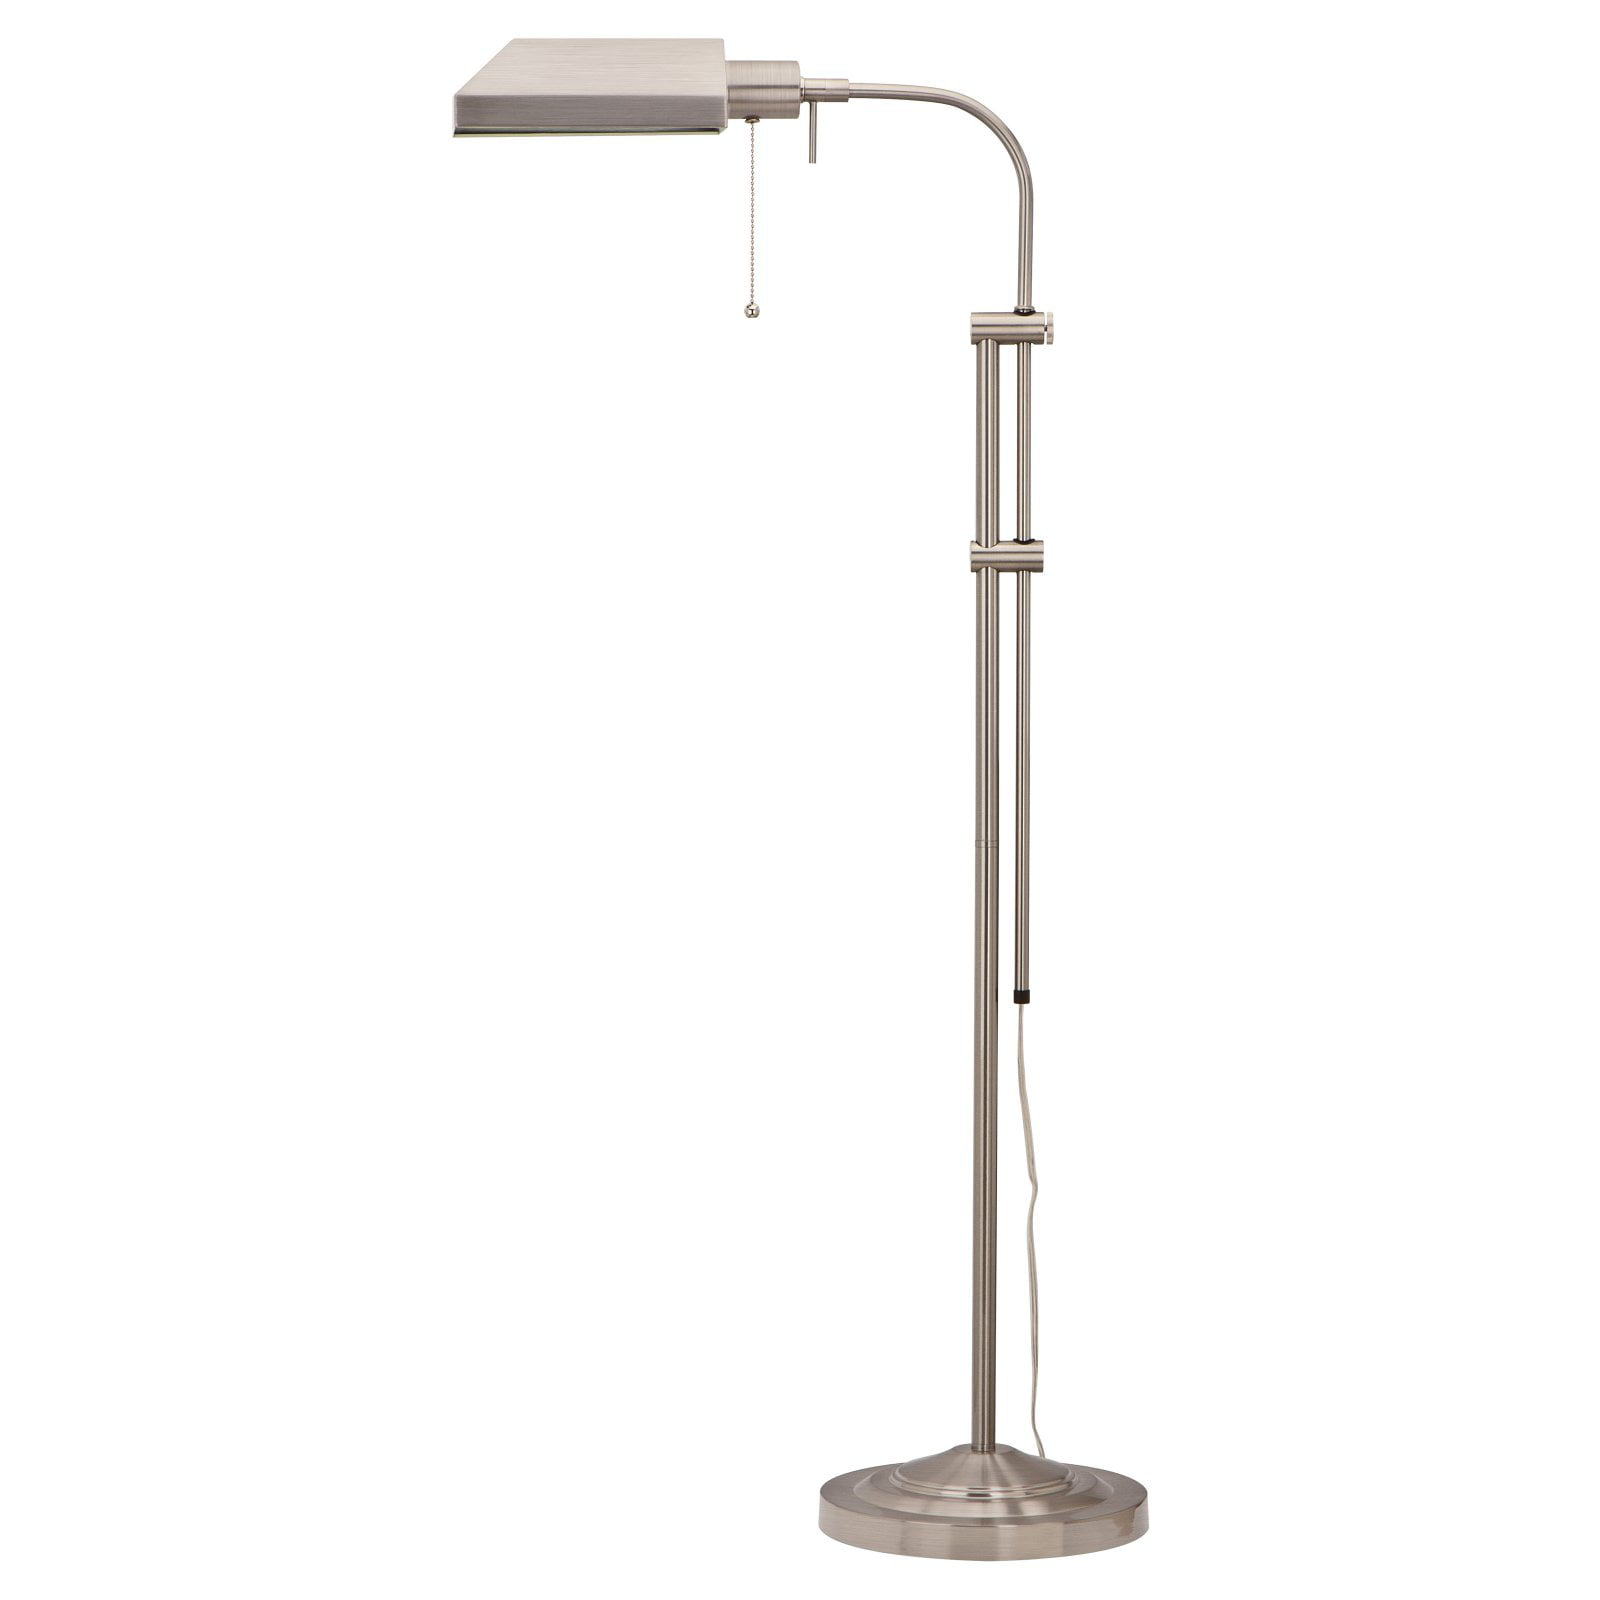 Cal Lighting BO-117FL Pharmacy Floor Lamp with Adjustable Pole by CAL Lighting